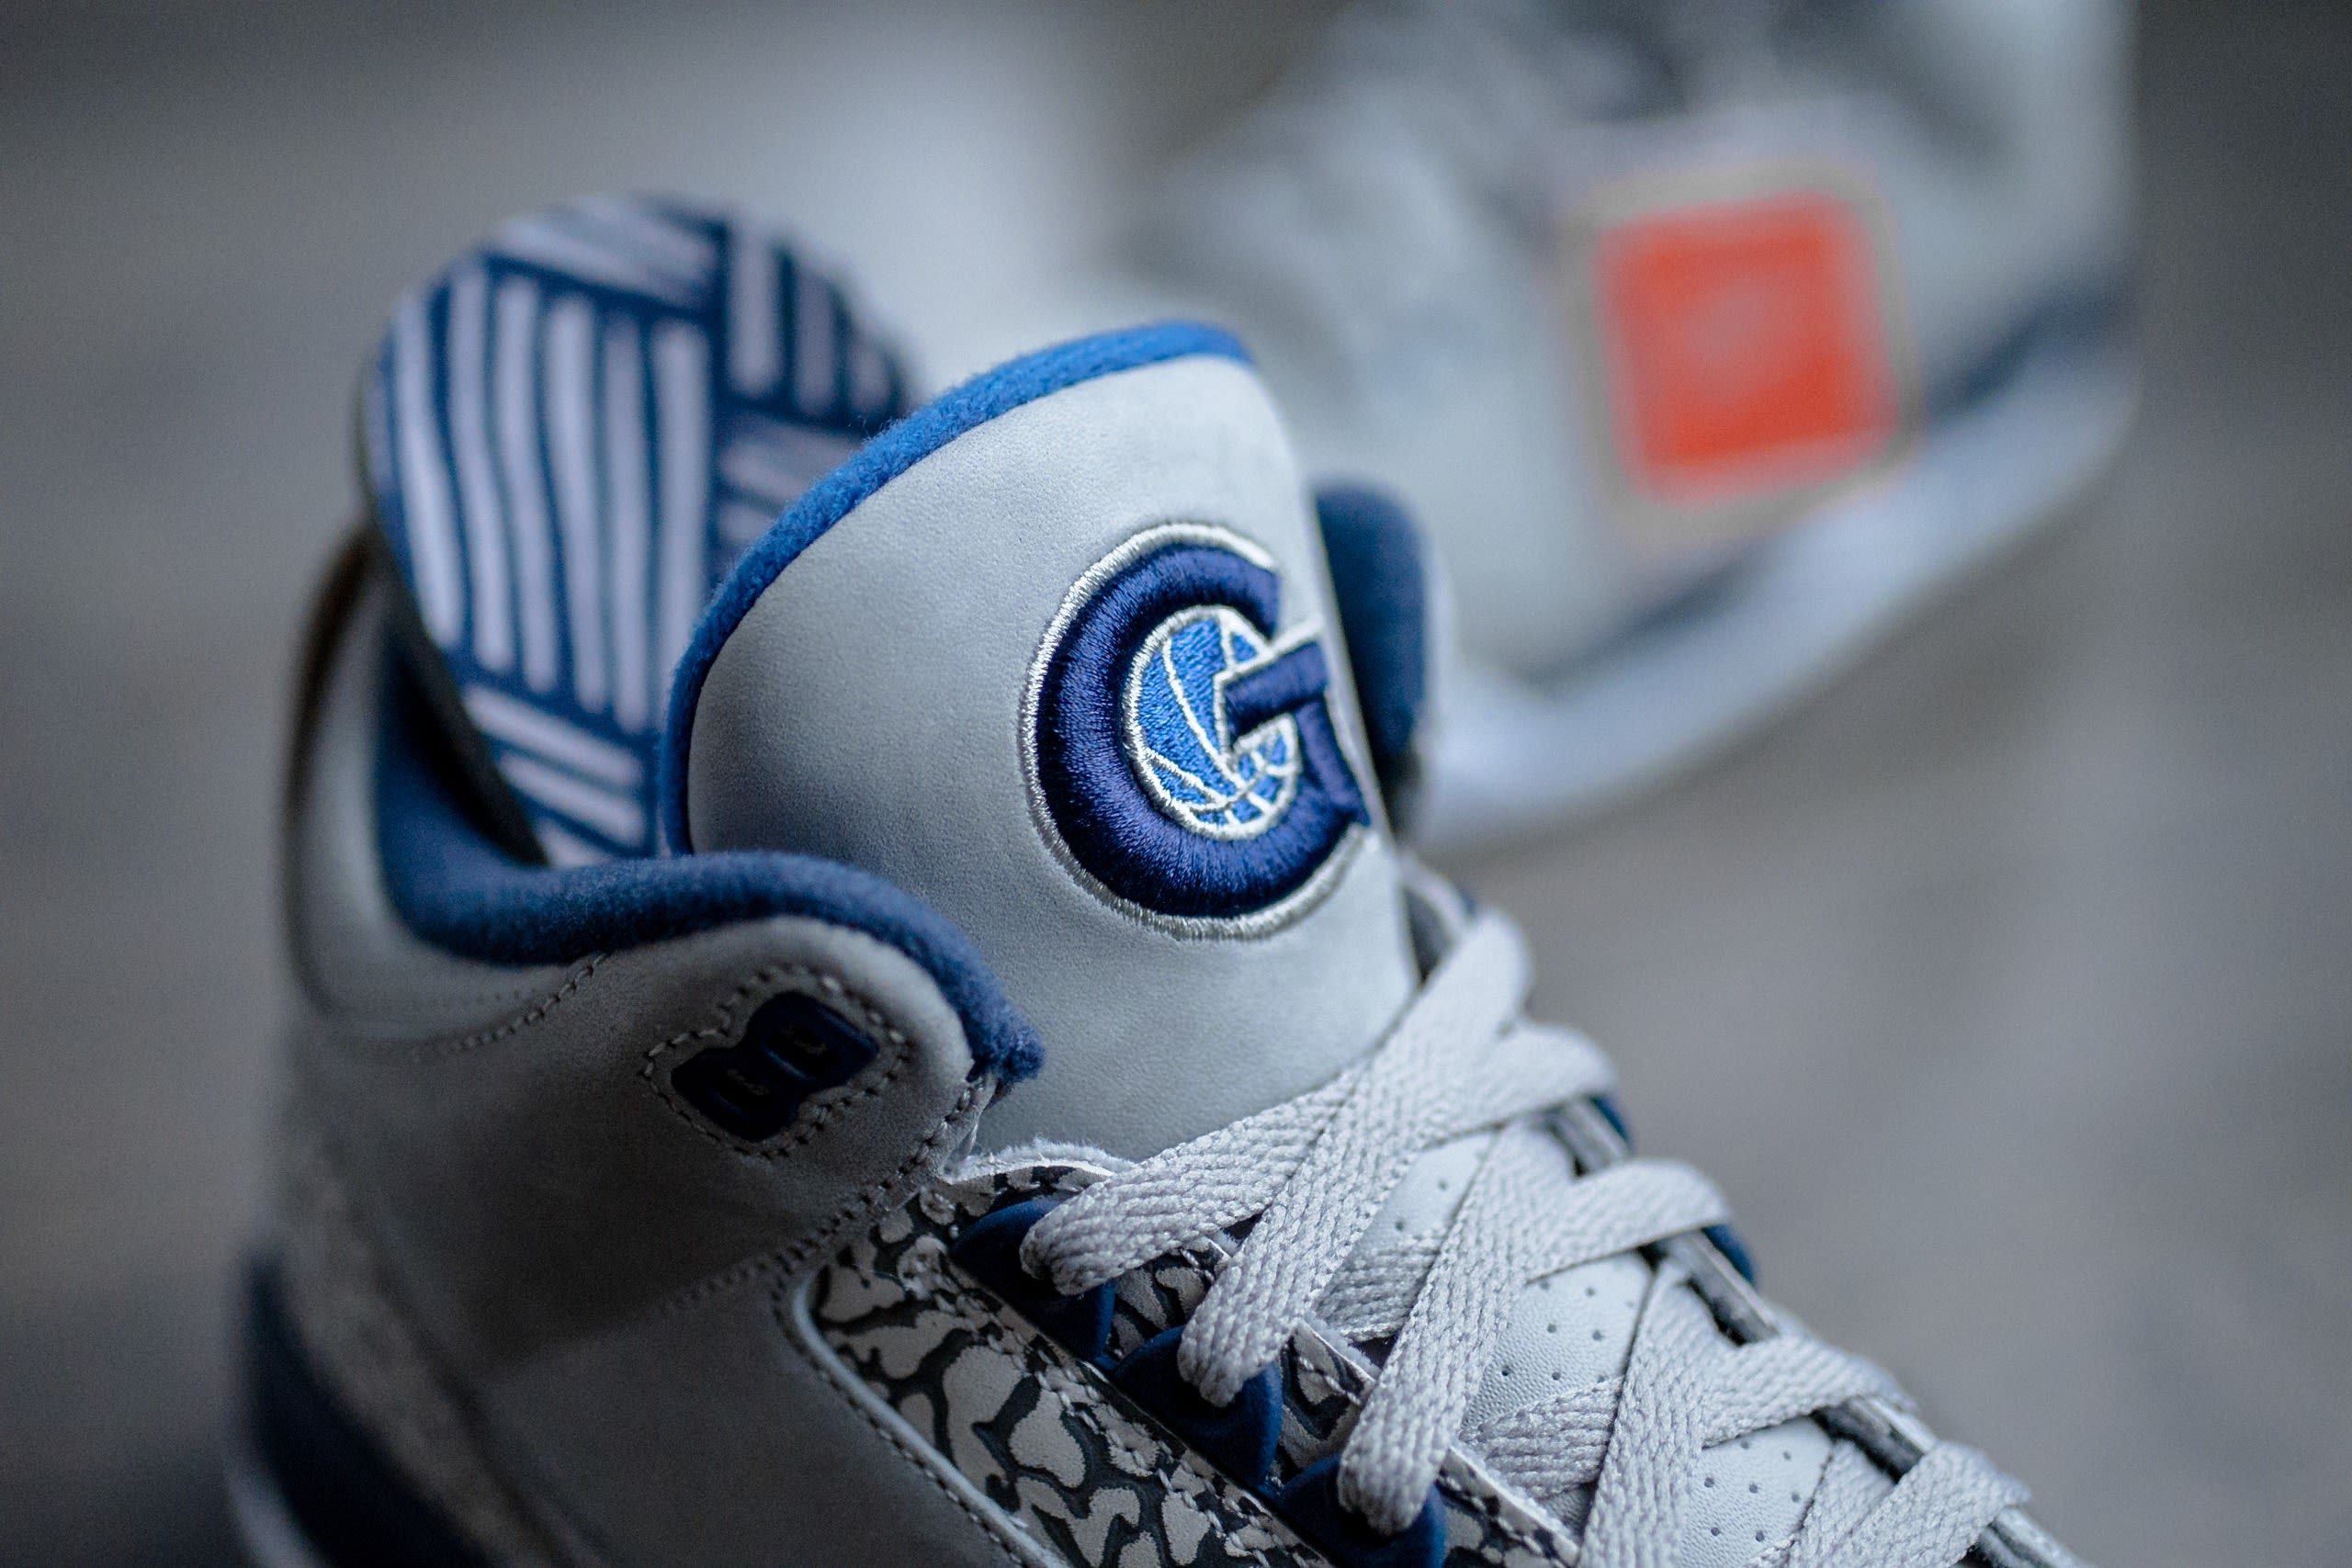 Air Jordan 3 'Georgetown' (Tongue and Insole)